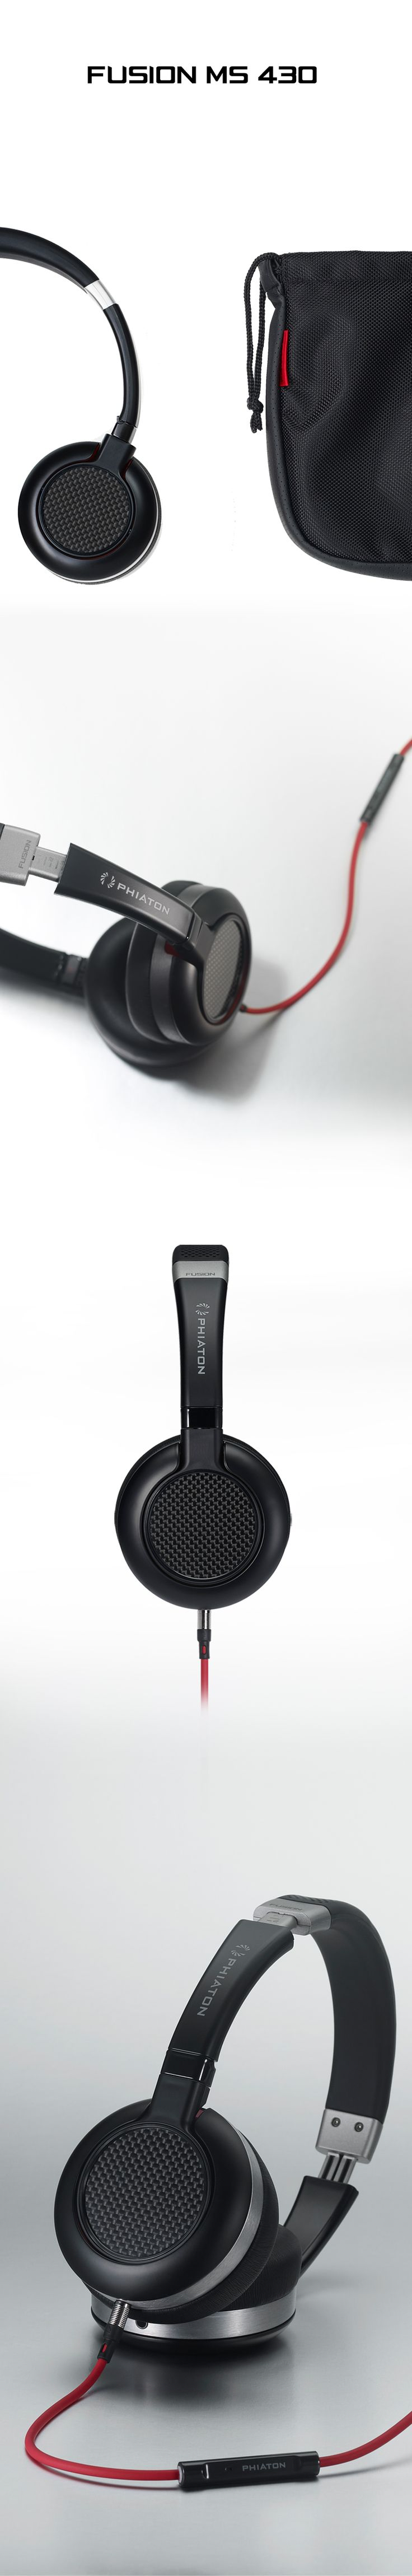 PHIATON Headphones FUSION MS 430 CARBON FIBER DESIGN